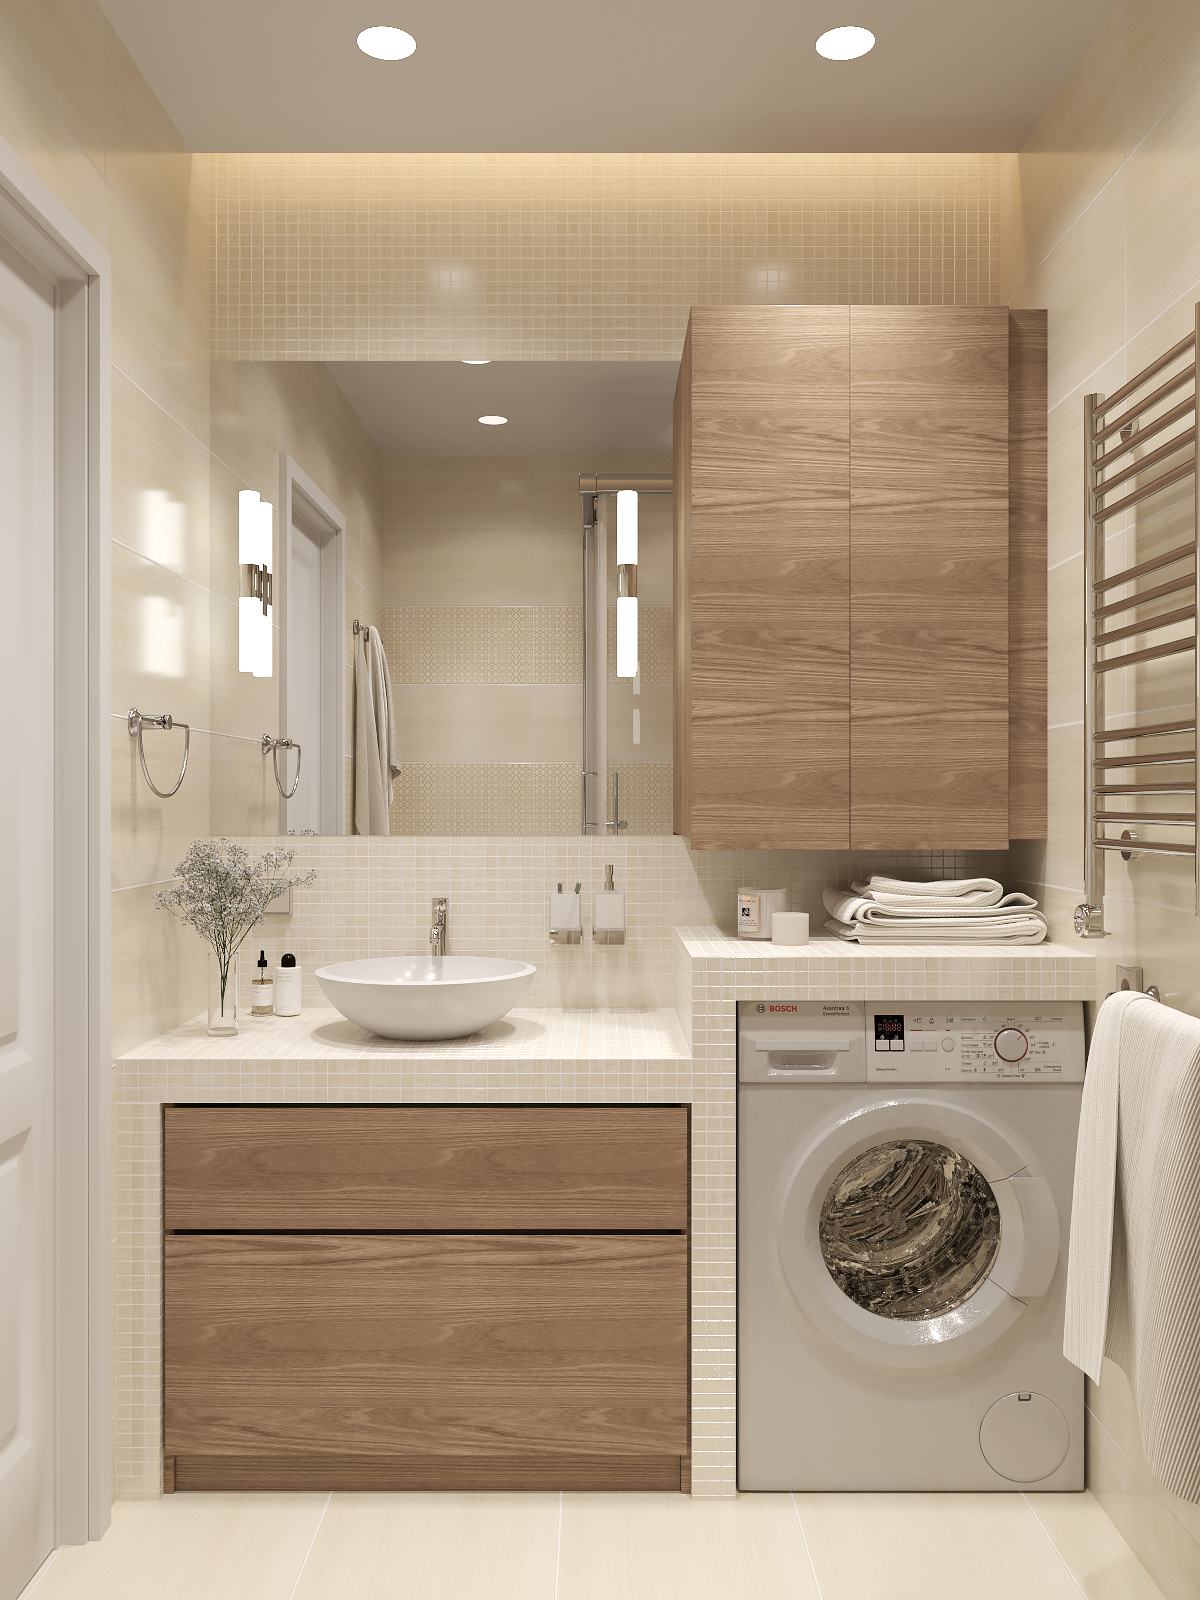 Very neat bathroom layout with the washing machine ... on Small Space Small Bathroom Ideas With Washing Machine id=24069